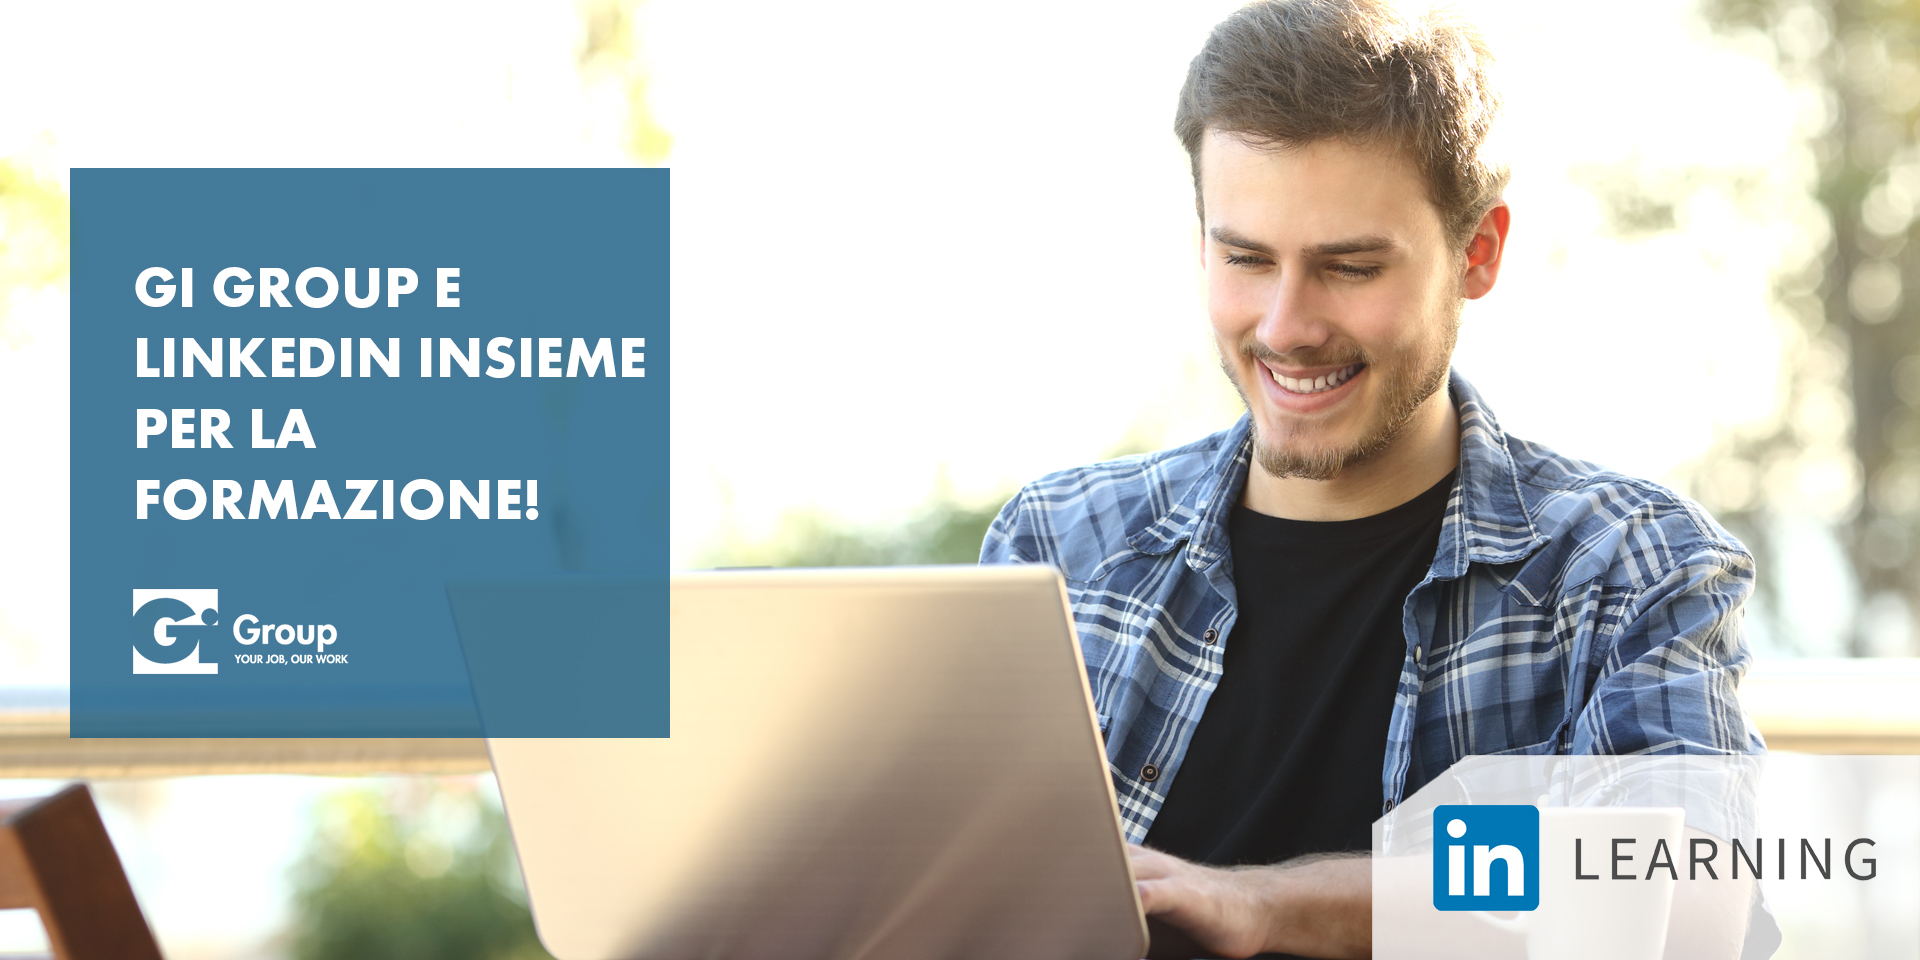 Improve your career: Gi Group e LinkedIn insieme per la formazione!